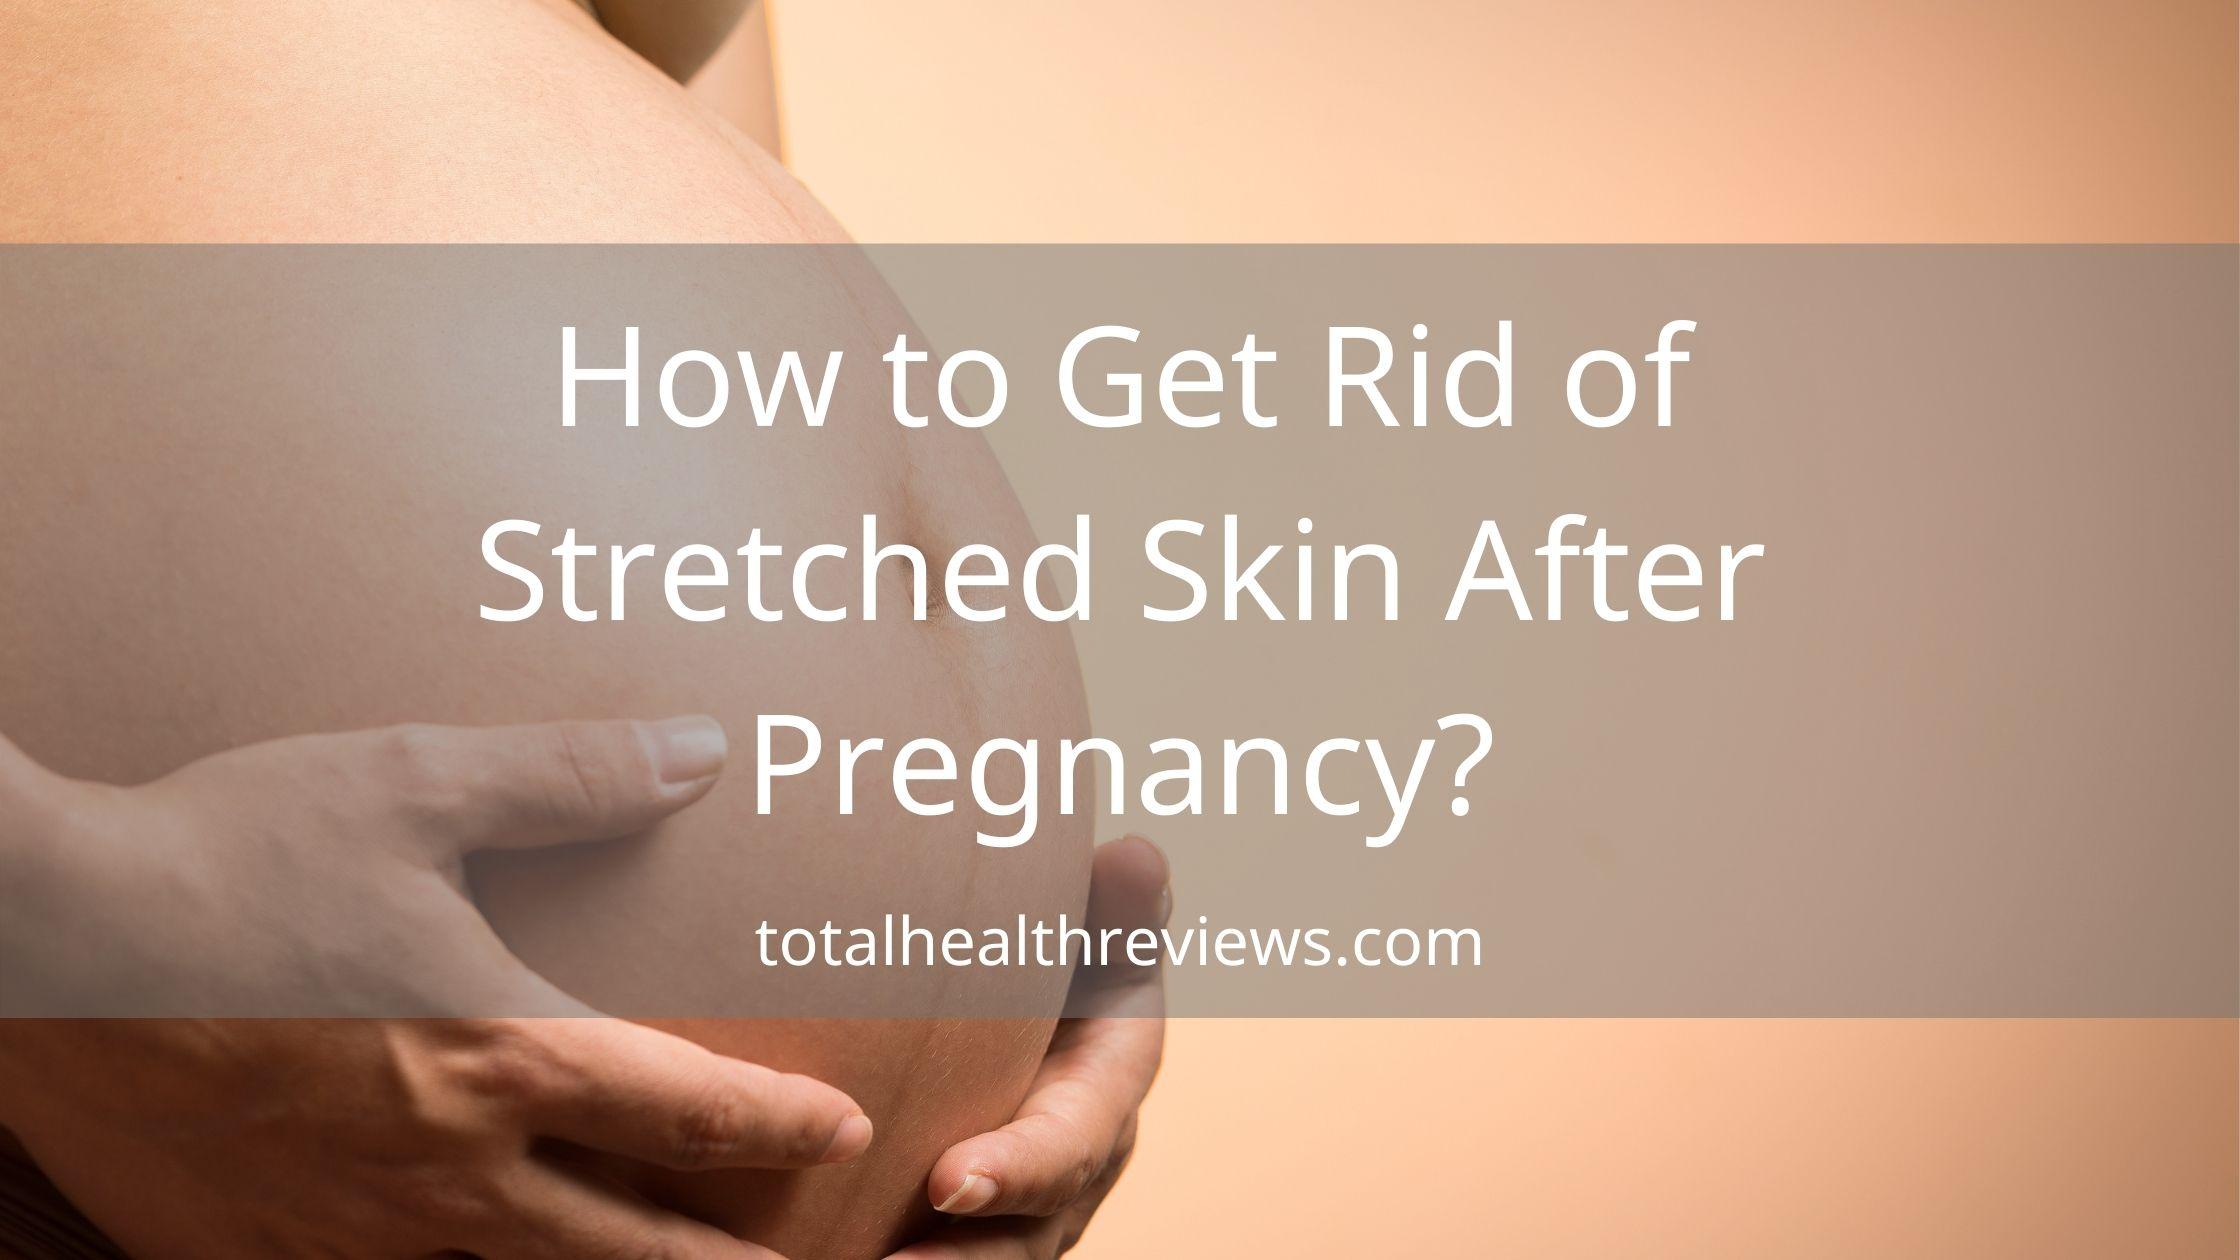 How to Get Rid of Stretched Skin After Pregnancy?